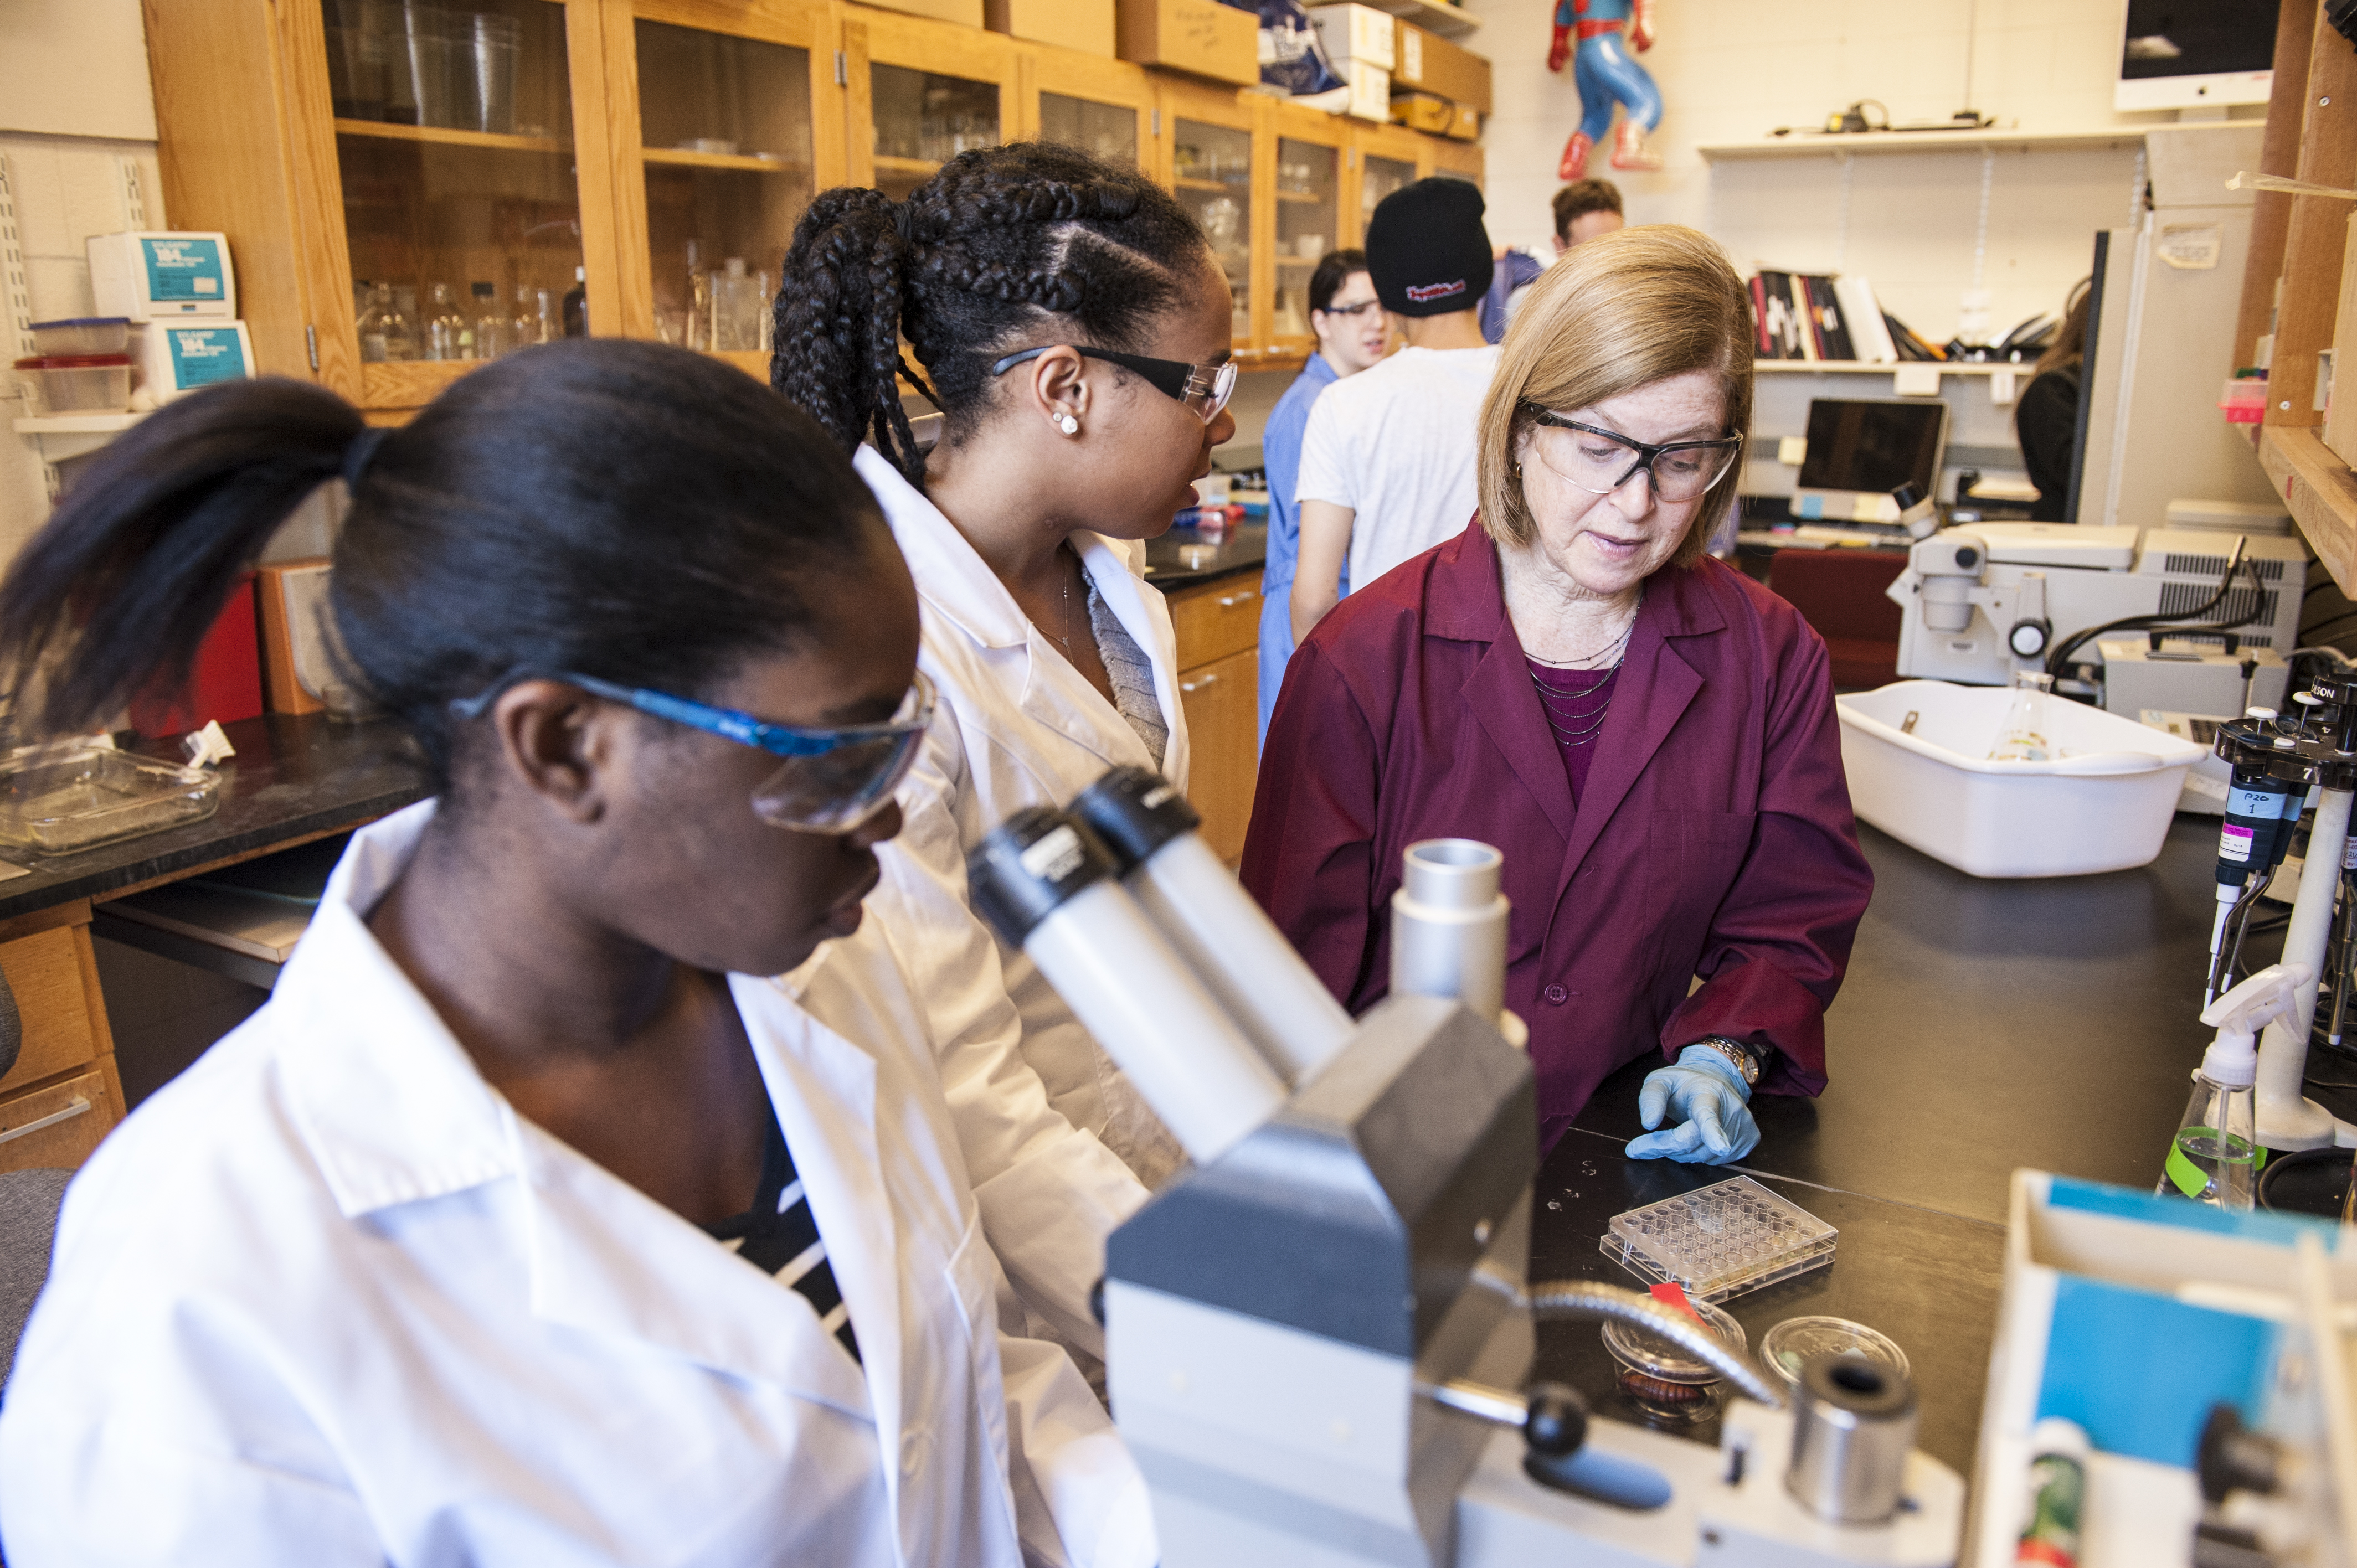 Two female students discuss an experiment in lab with Professor Wendy Smith. The two students and Professor Smith stand at the lab bench near a microscope.